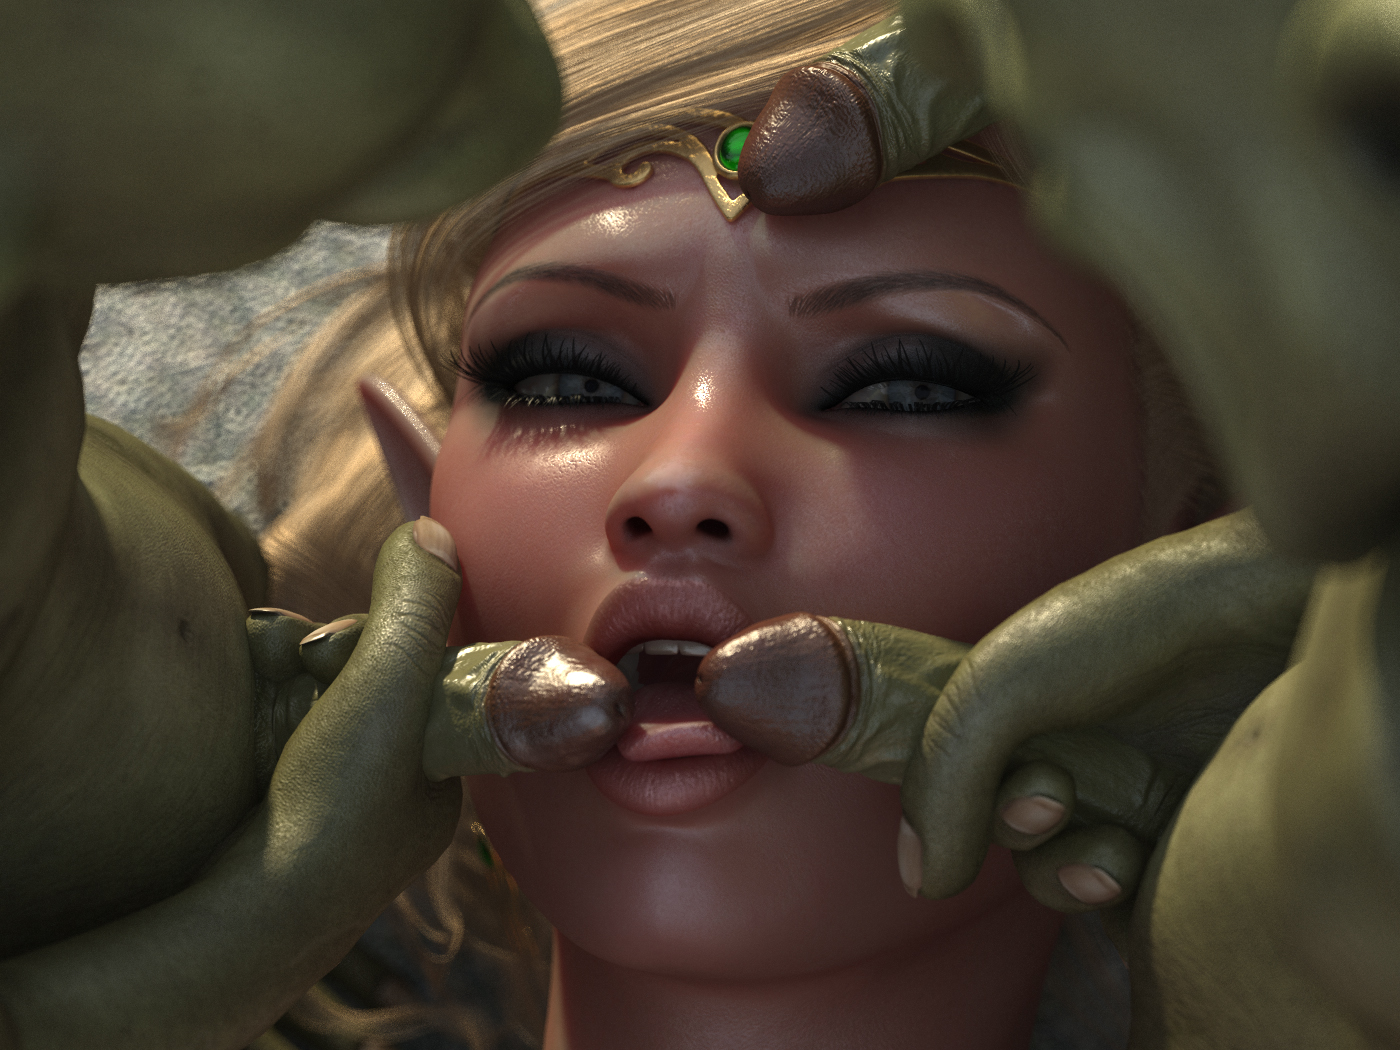 Monster women hayry 3d porn download